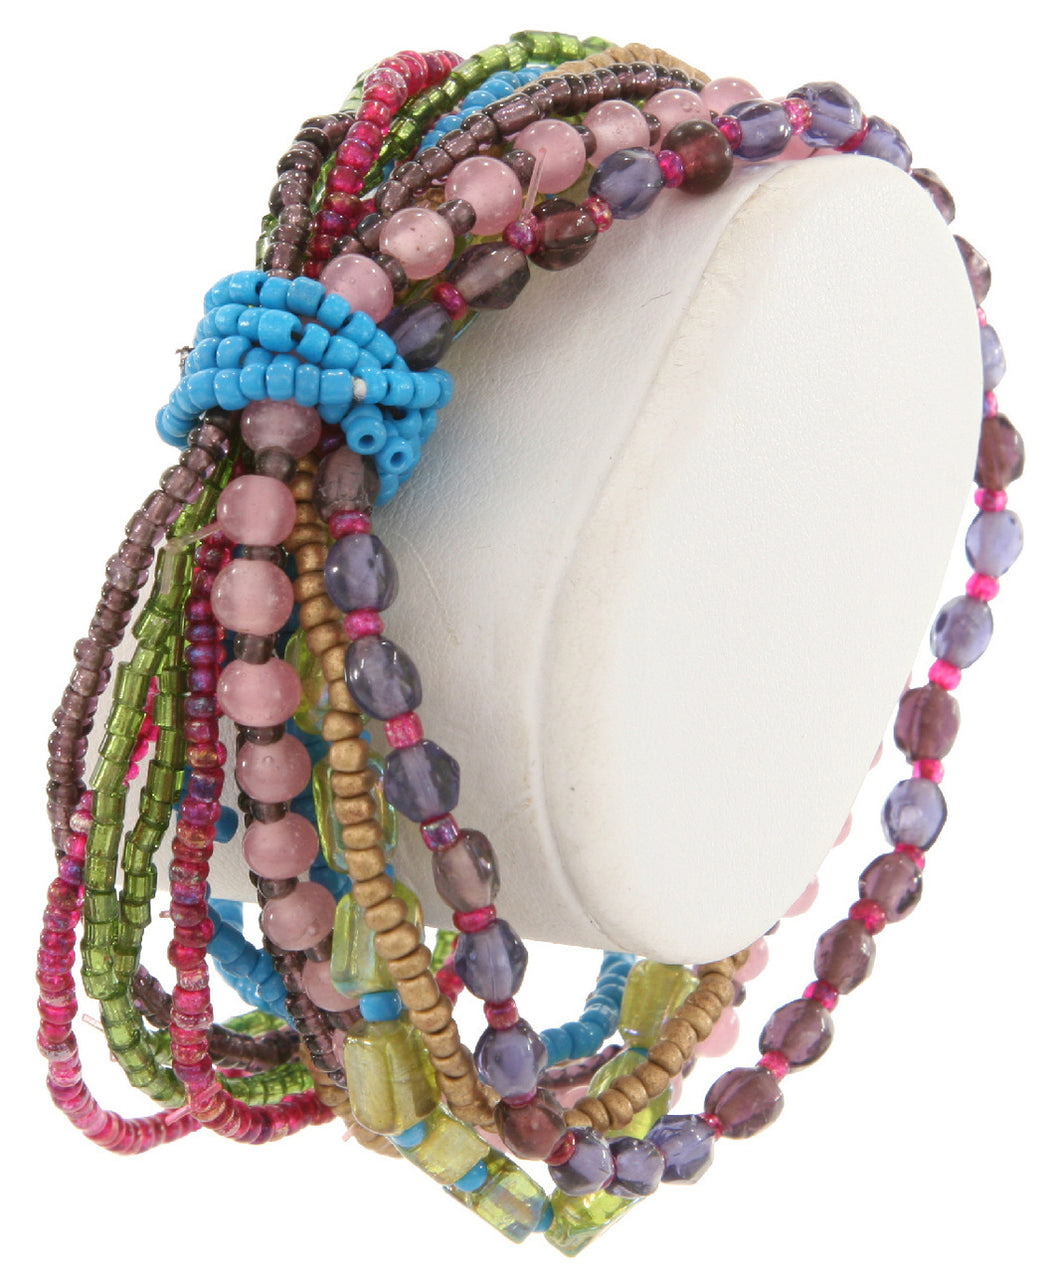 Handmade Glass Bead Multi Strand Stretch Bracelet